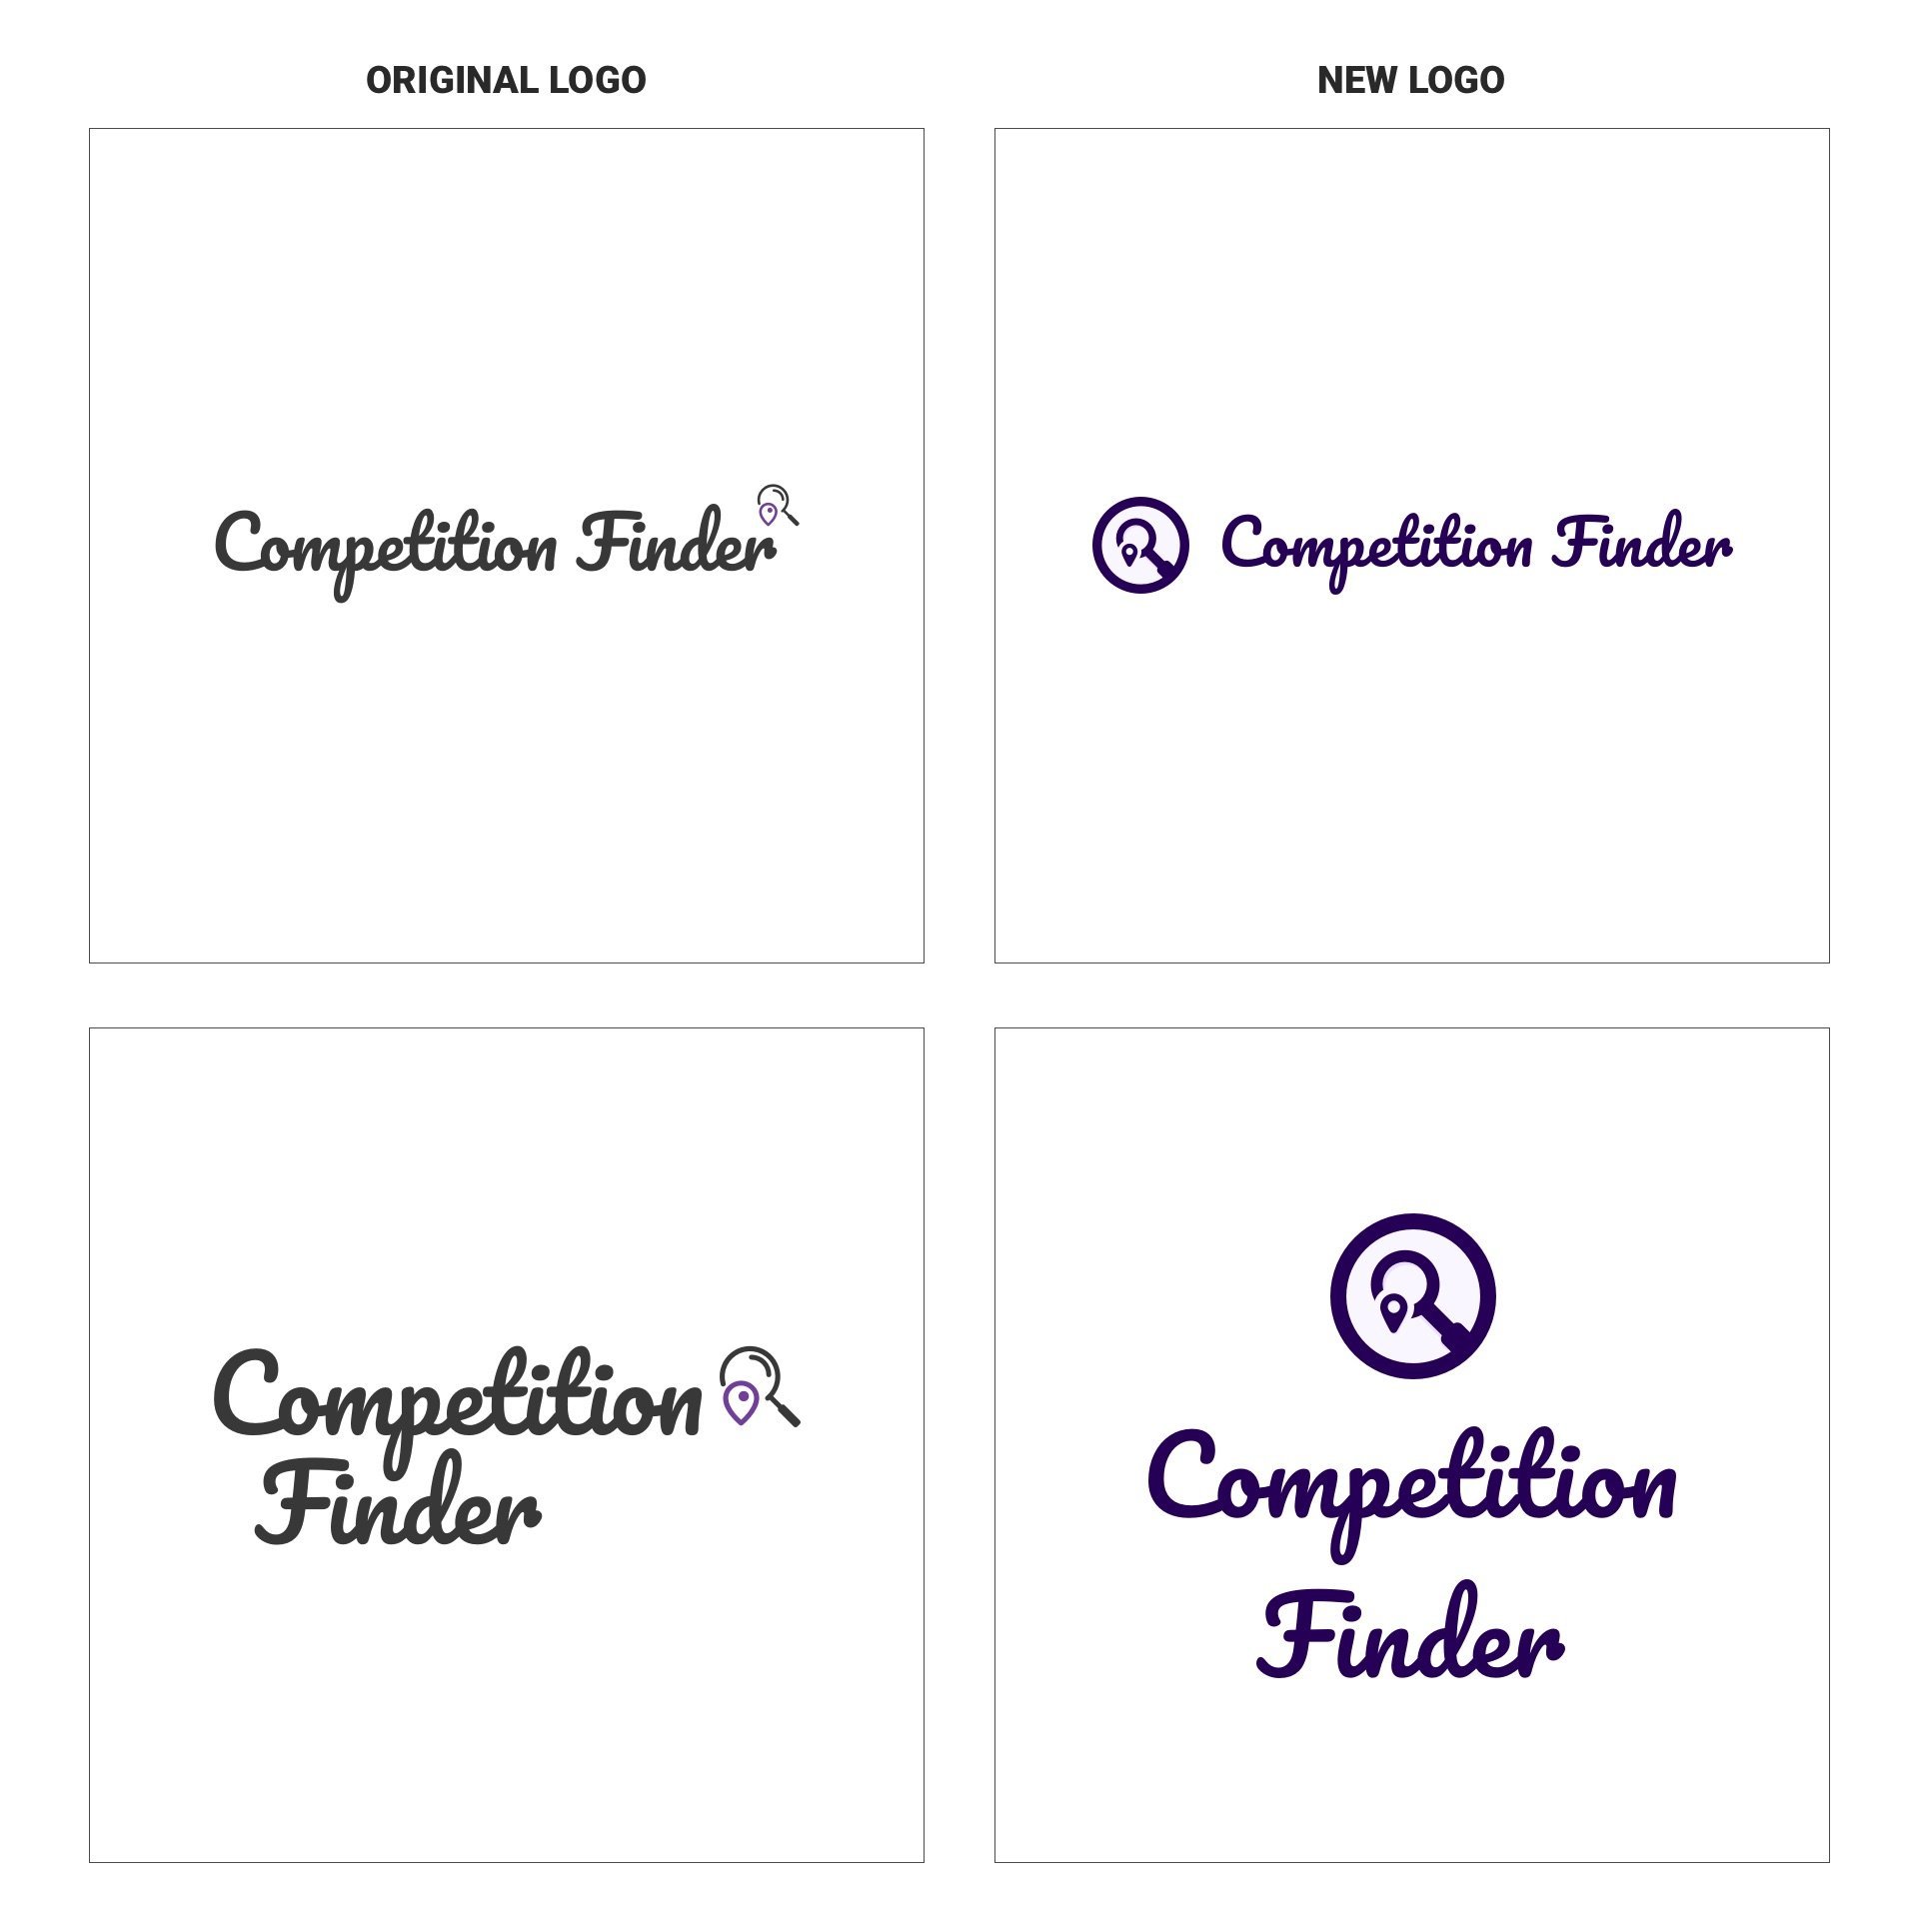 Competition Finder - Original and New Logo